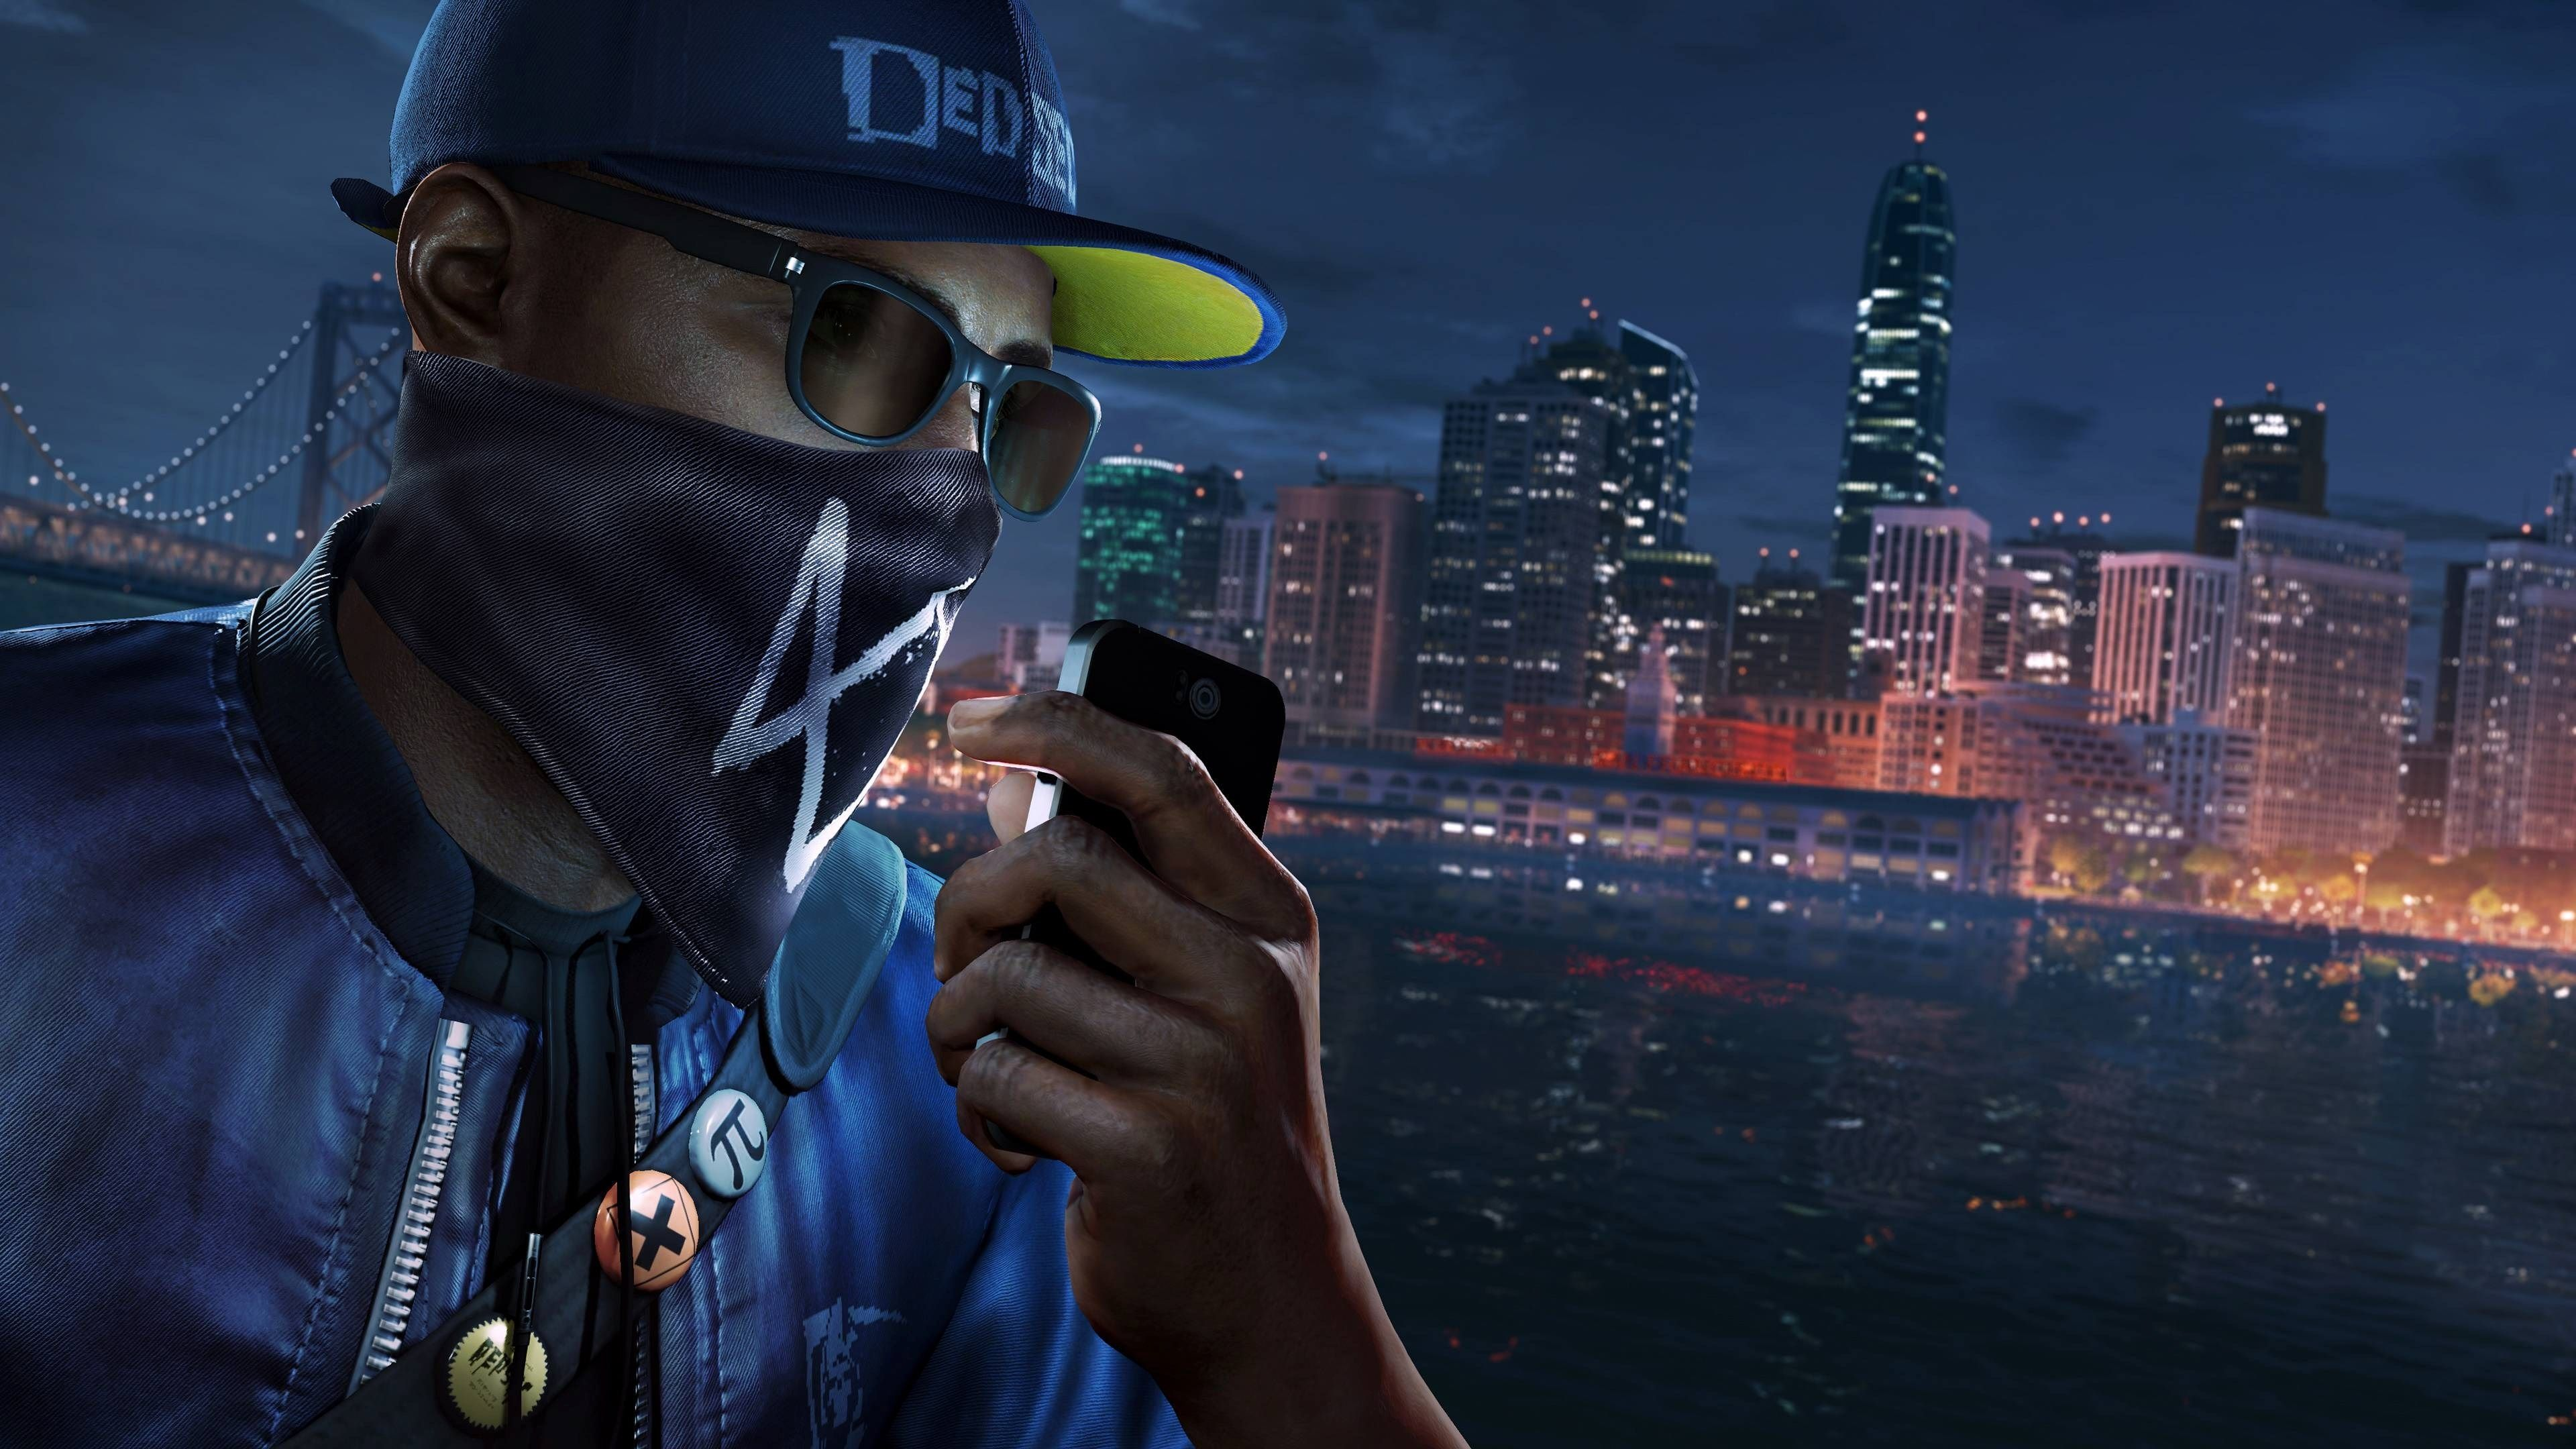 3840x2160 Watch Dogs 2 4k Screen Wallpaper Free Download Watch Dogs Ps4 Background Tv Online Free